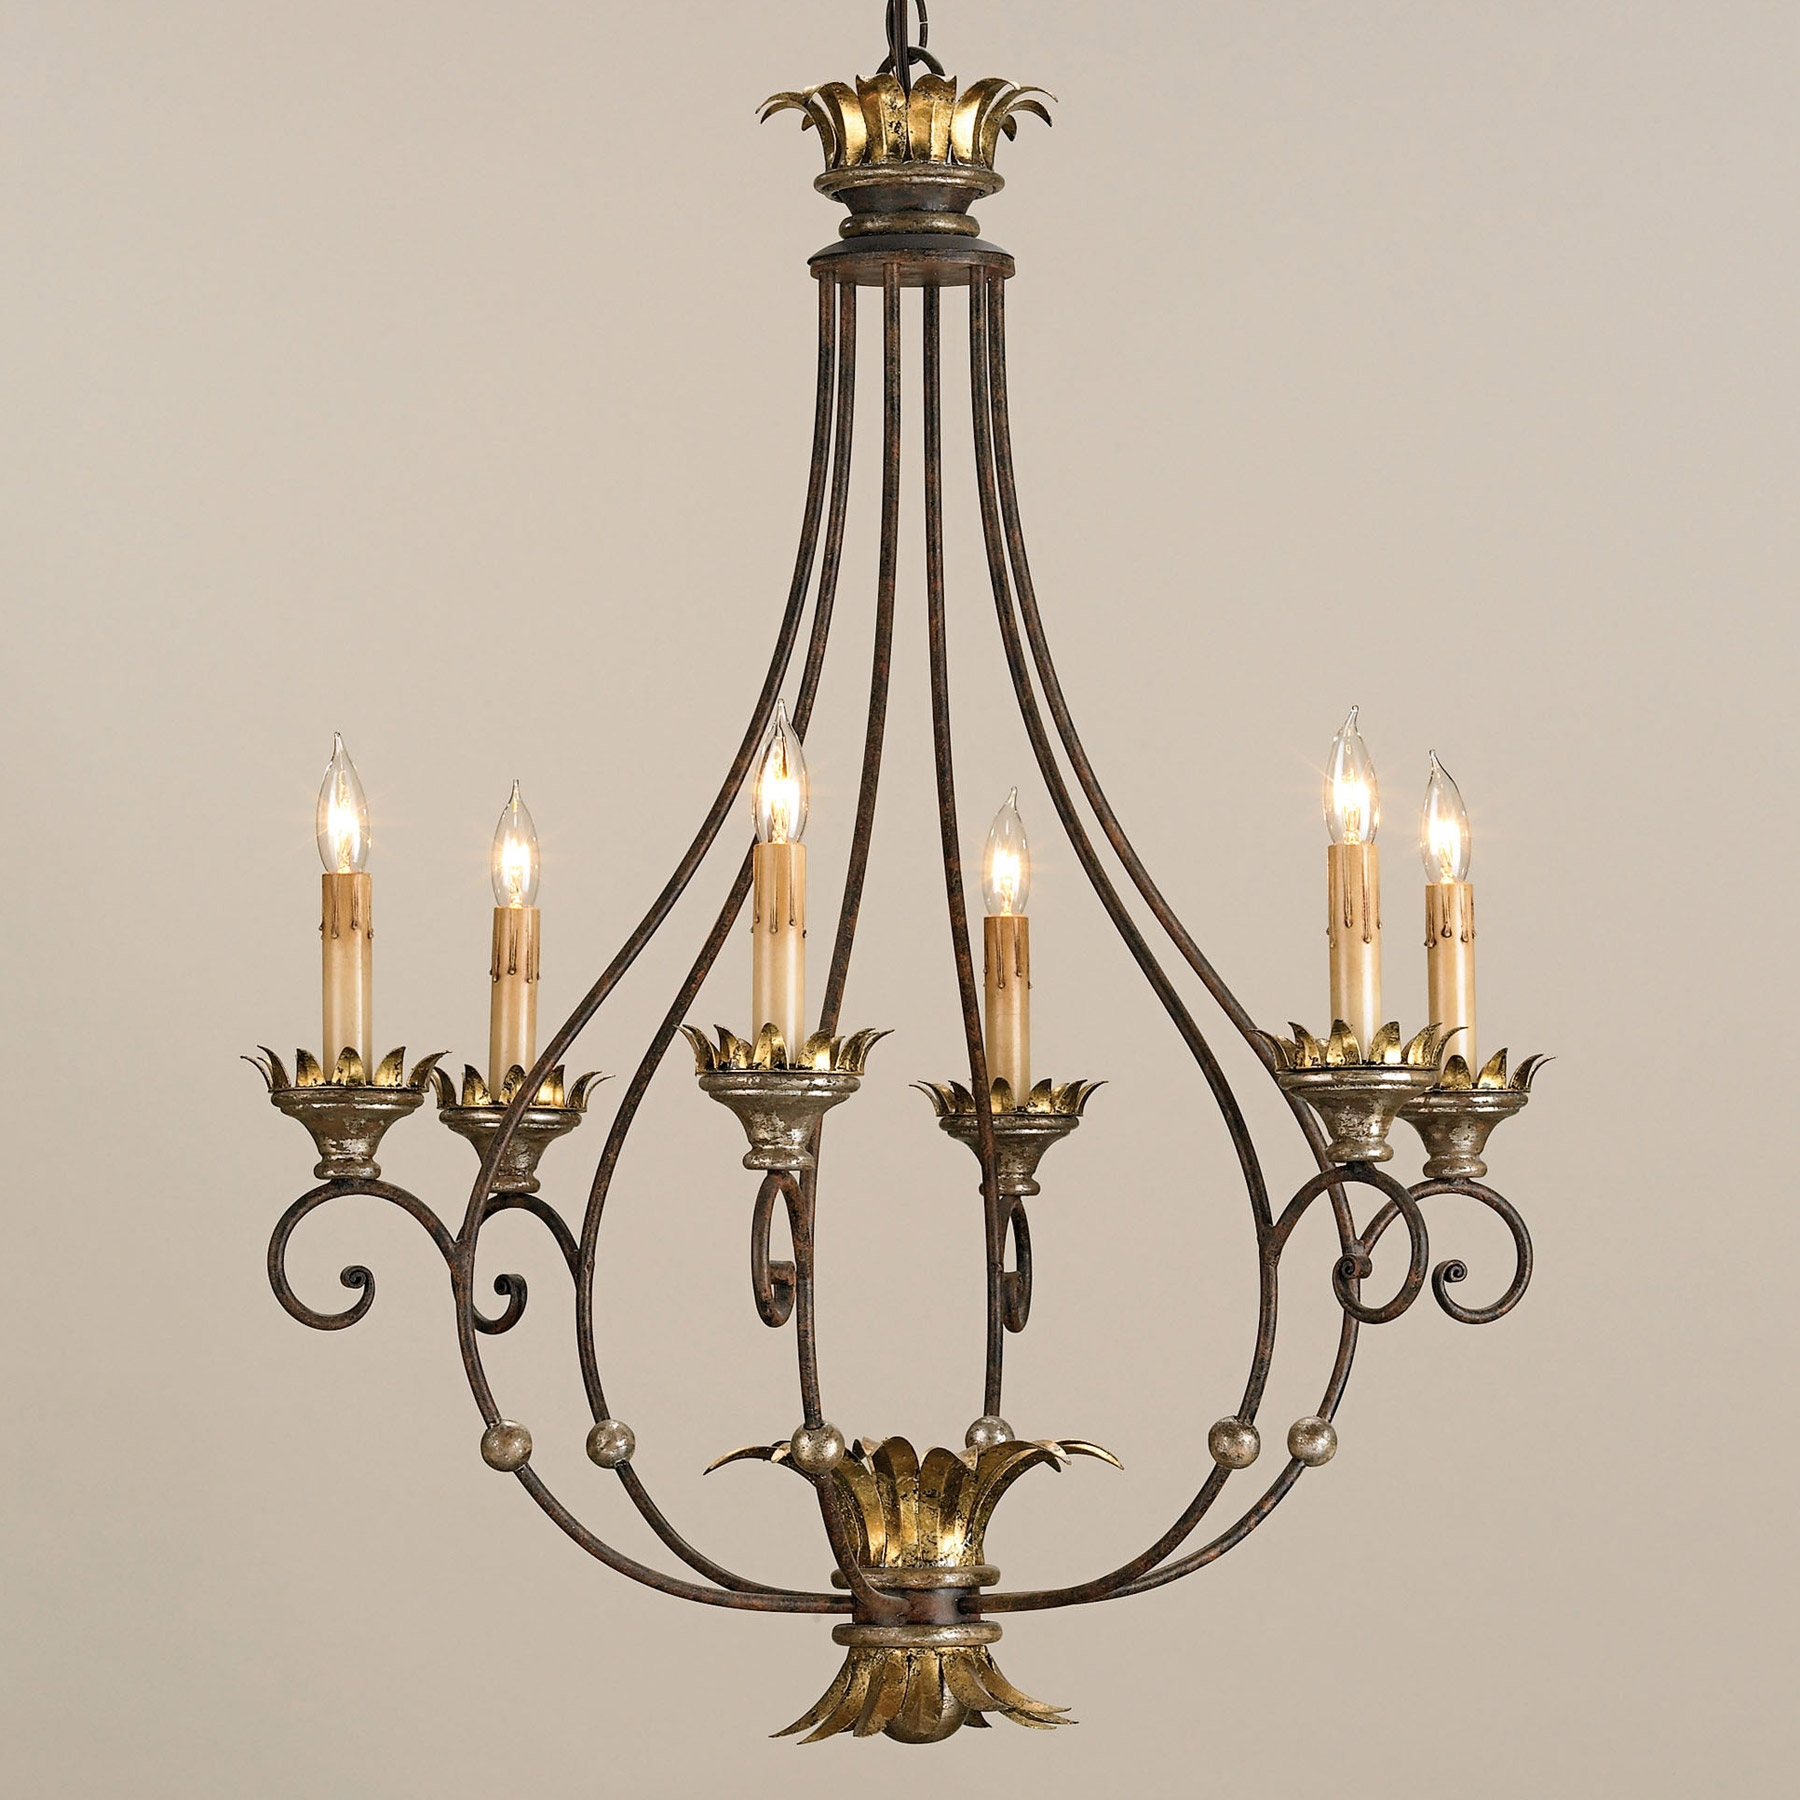 Traditional Chandeliers Luxury For Your Home Decorating Ideas With Pertaining To Traditional Chandelier (#10 of 12)